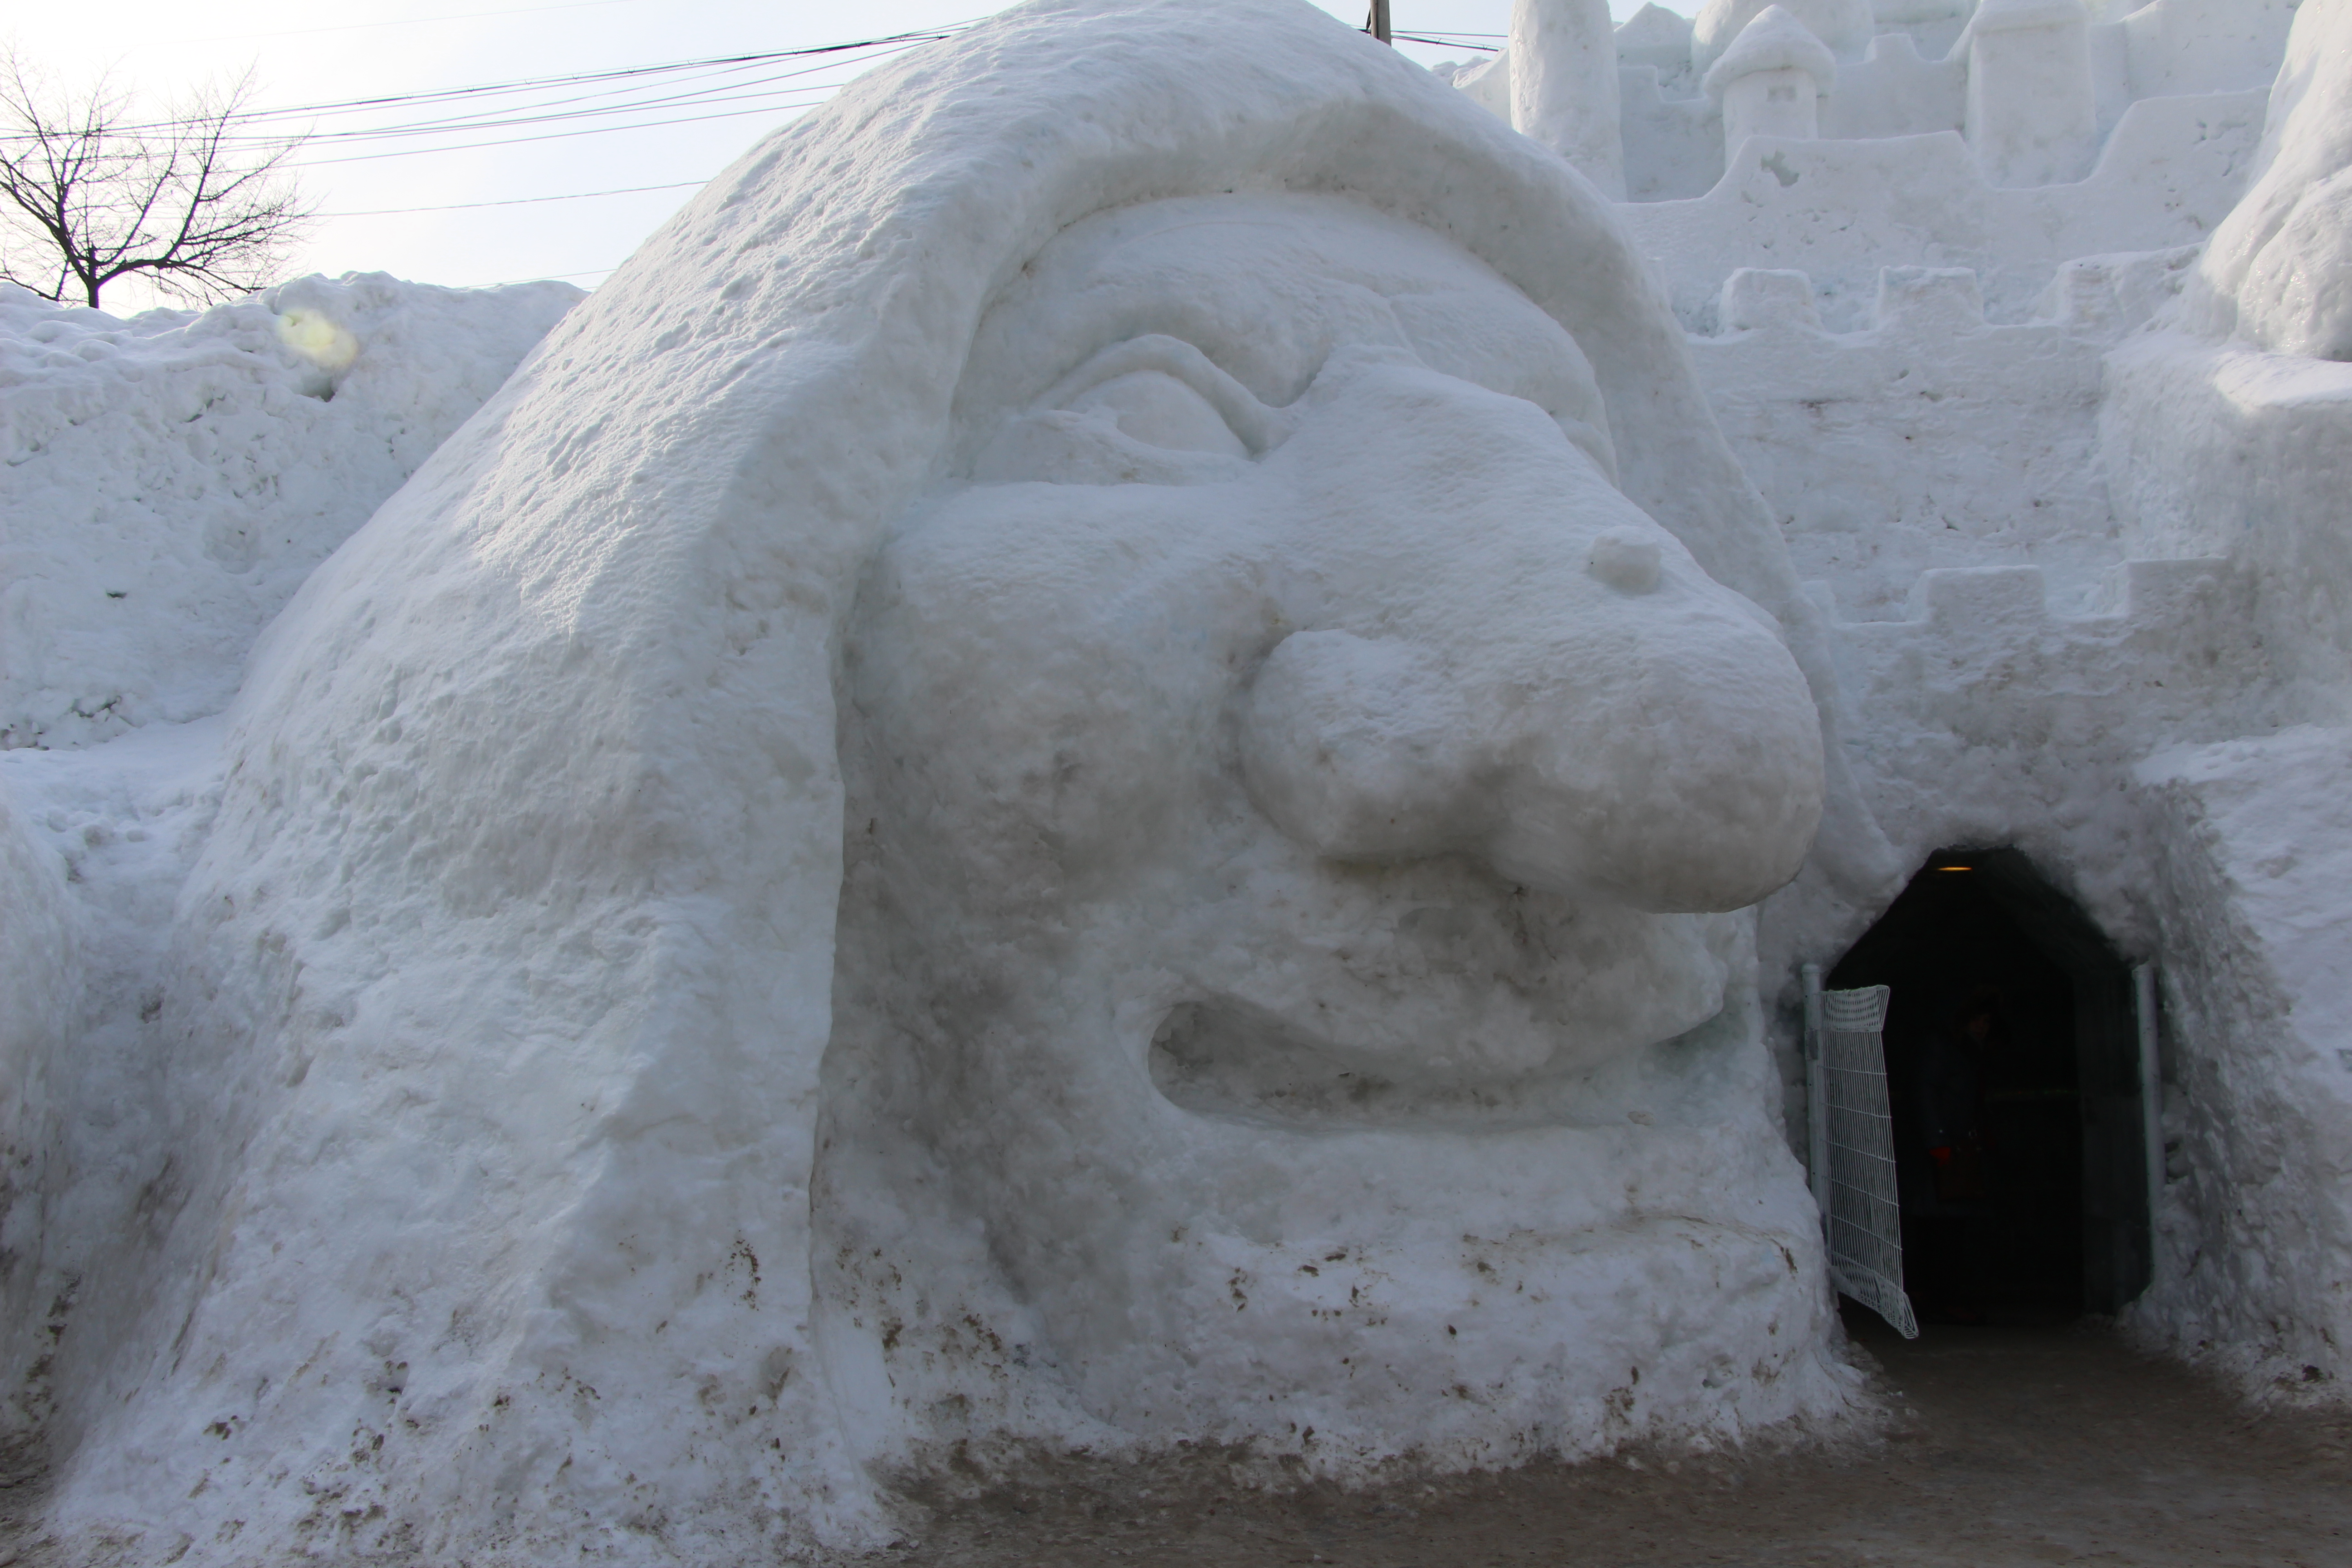 A Real Igloo Inside - Bing images